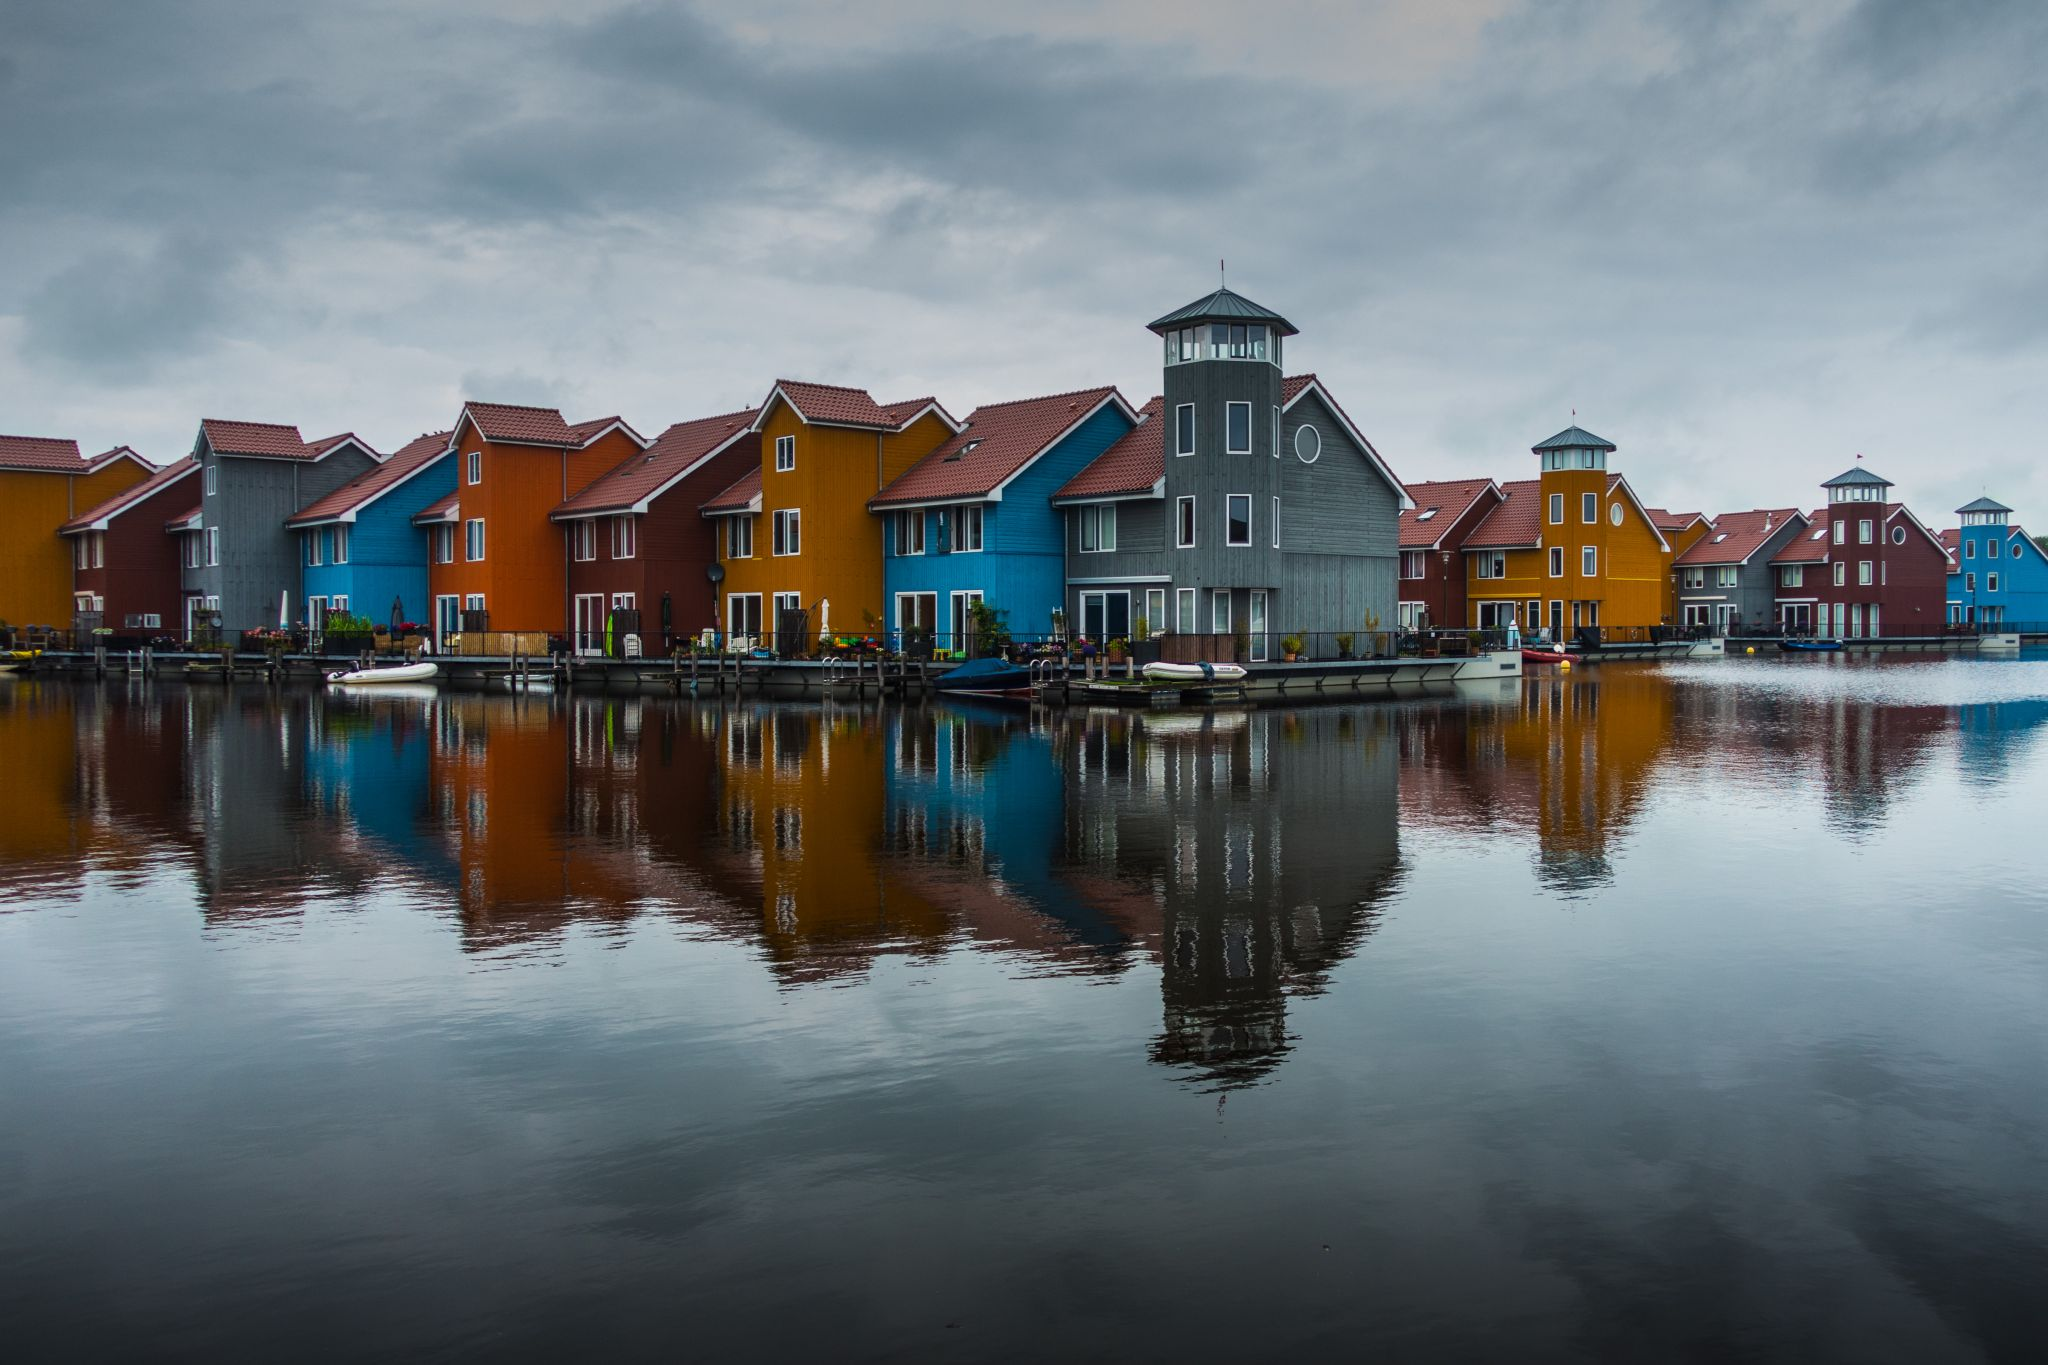 Colorful houses in Groningen, The Netherlands, Netherlands